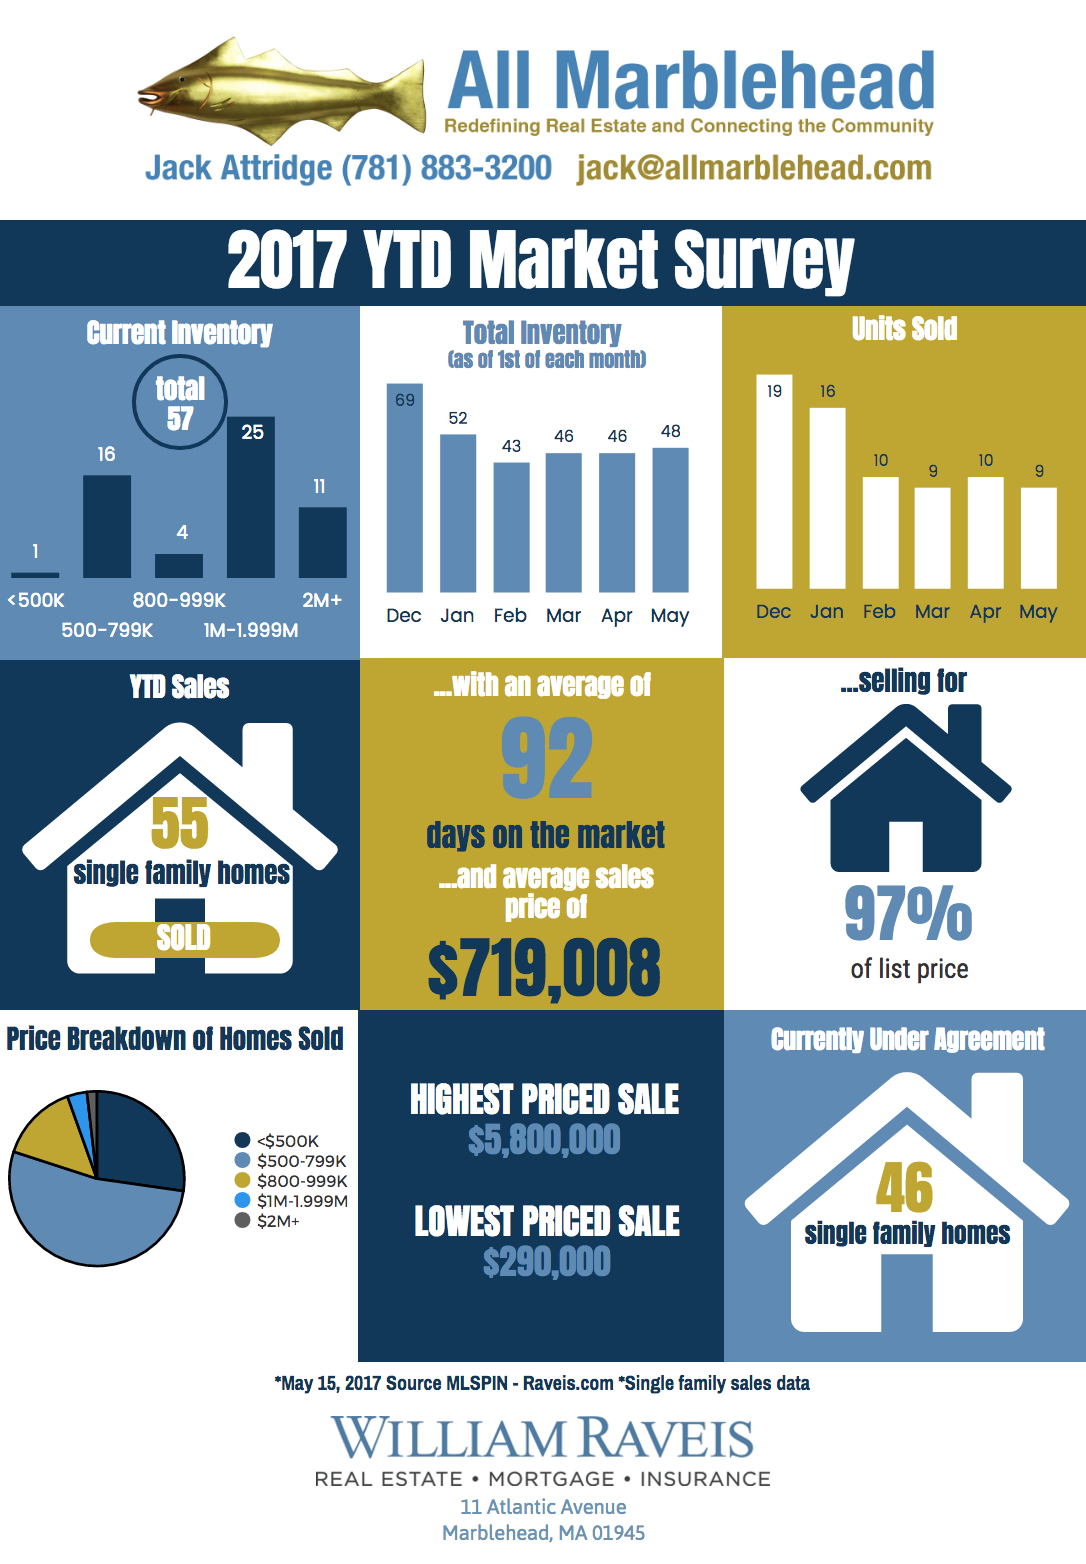 2017 YTD as of May